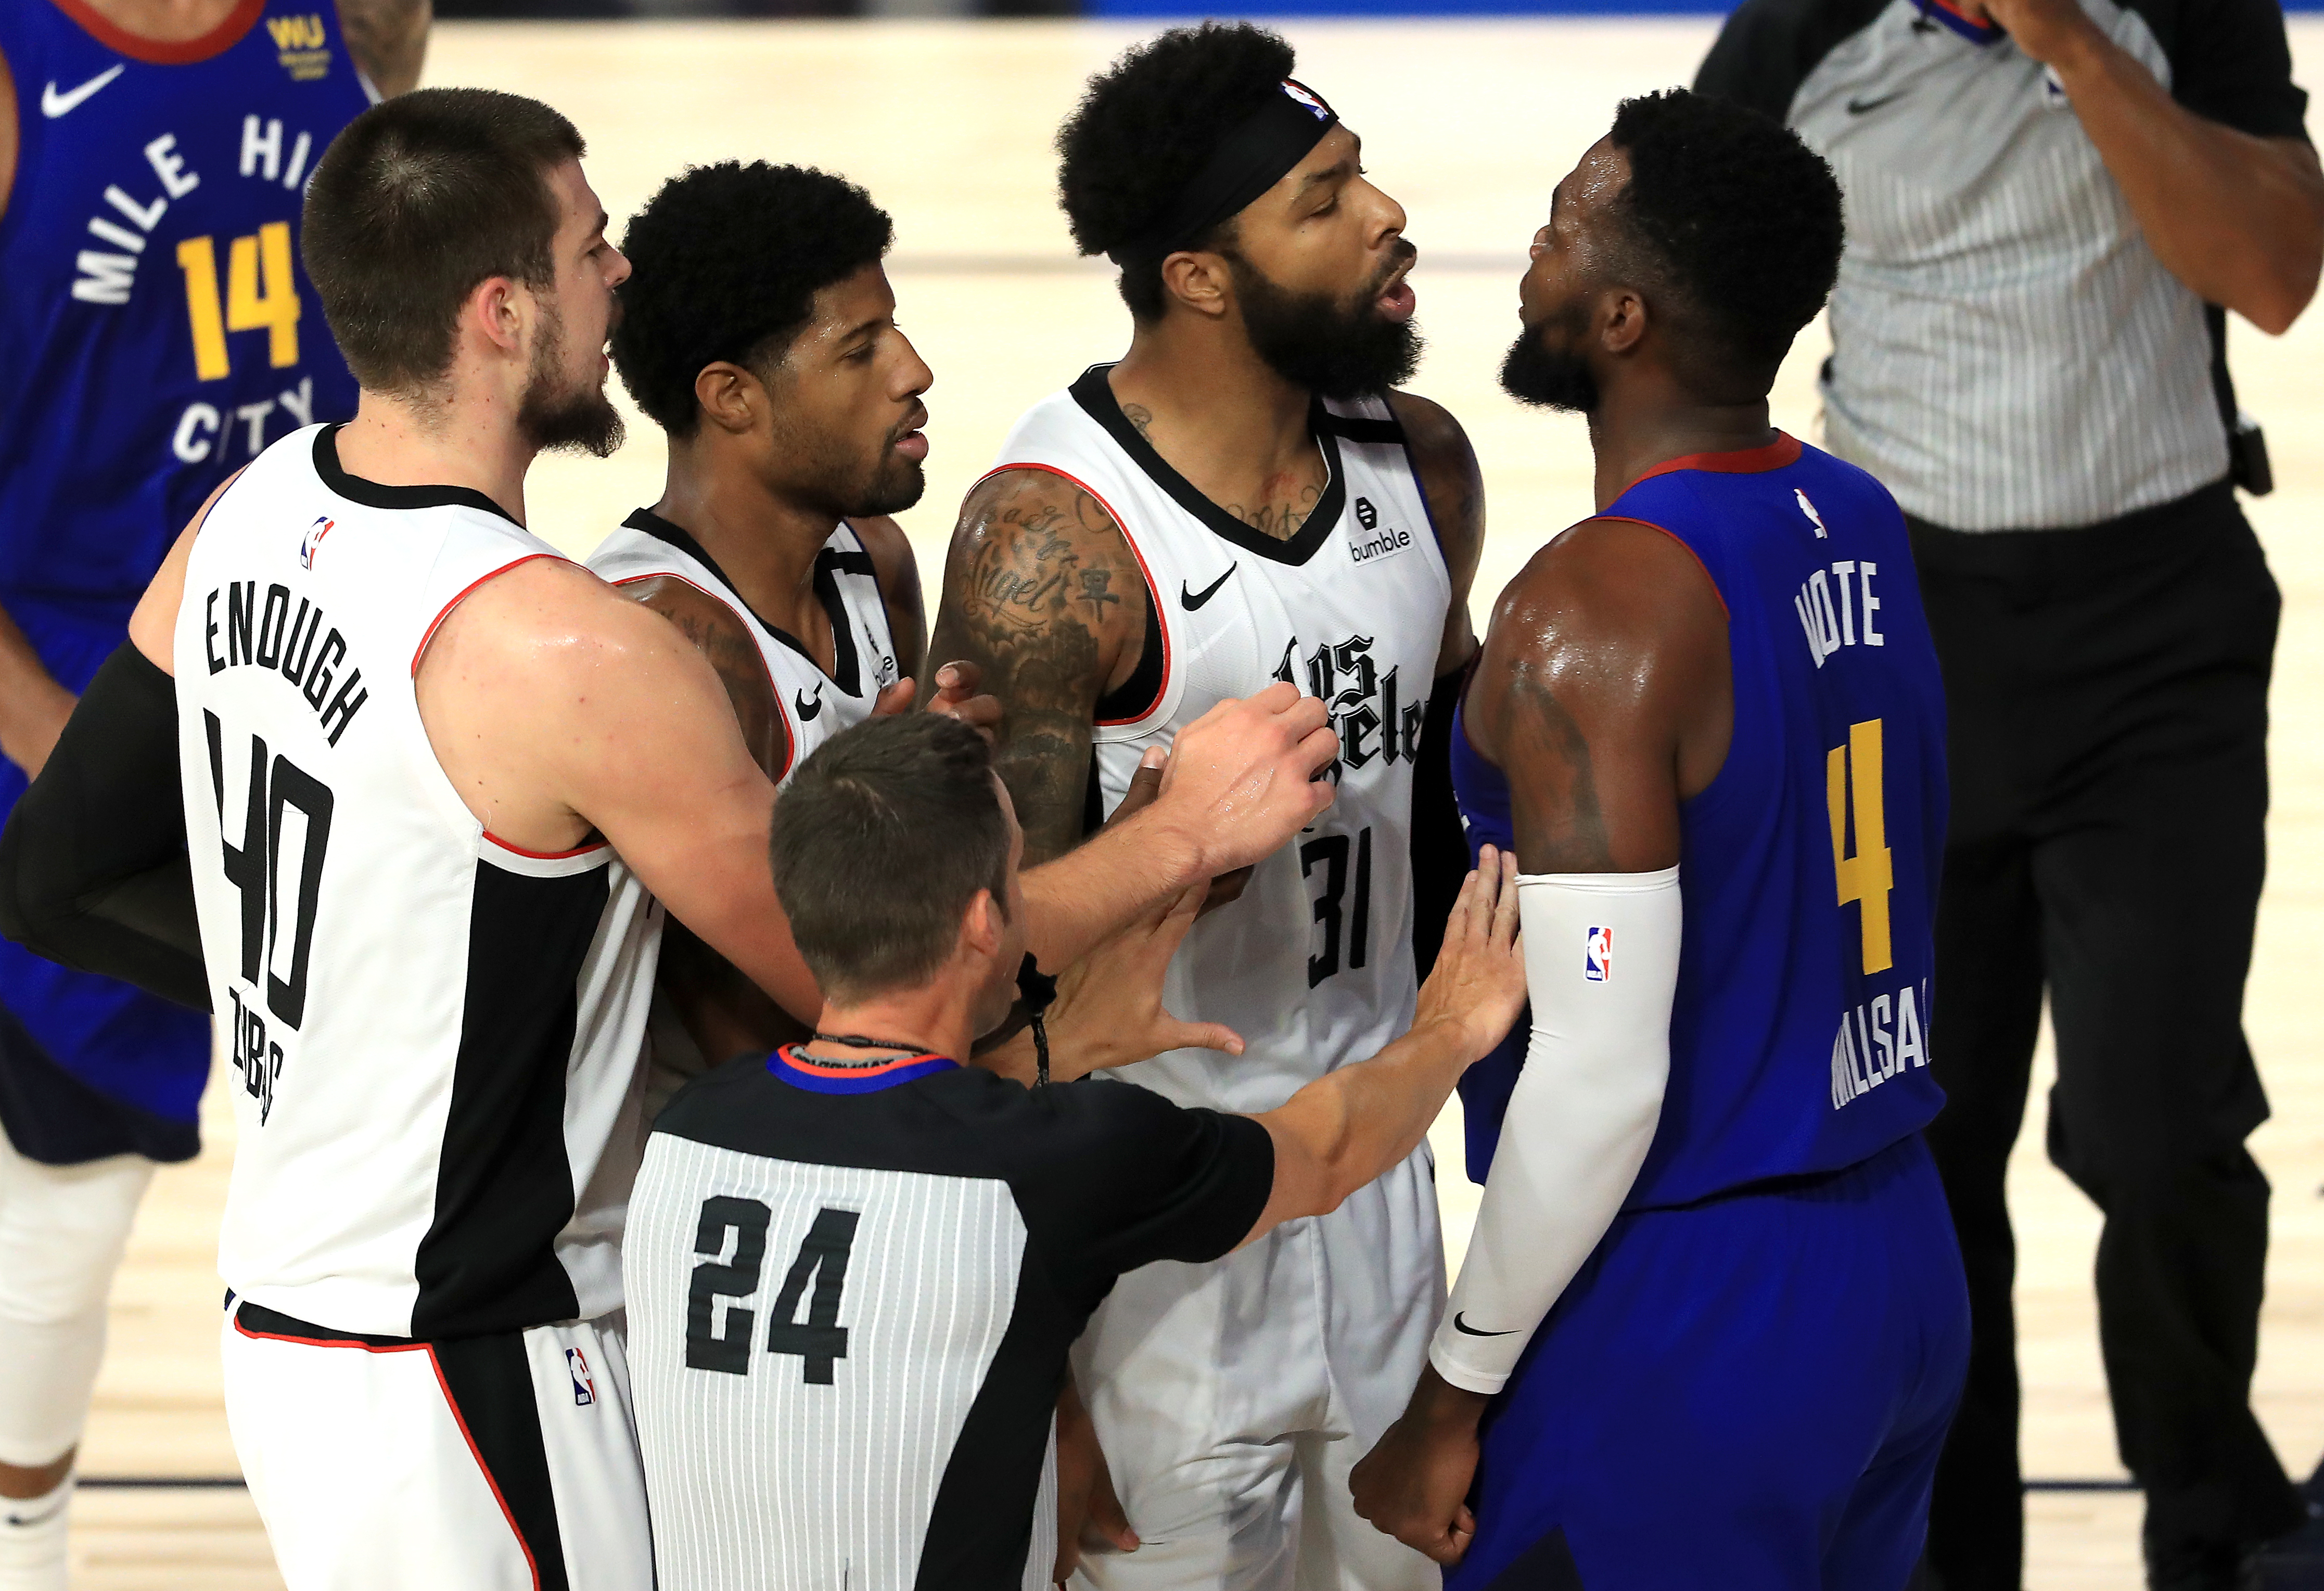 Denver Nuggets Vs La Clippers Game 7 Score Updates Odds Time Tv Channel How To Watch Free Live Stream Online Oregonlive Com